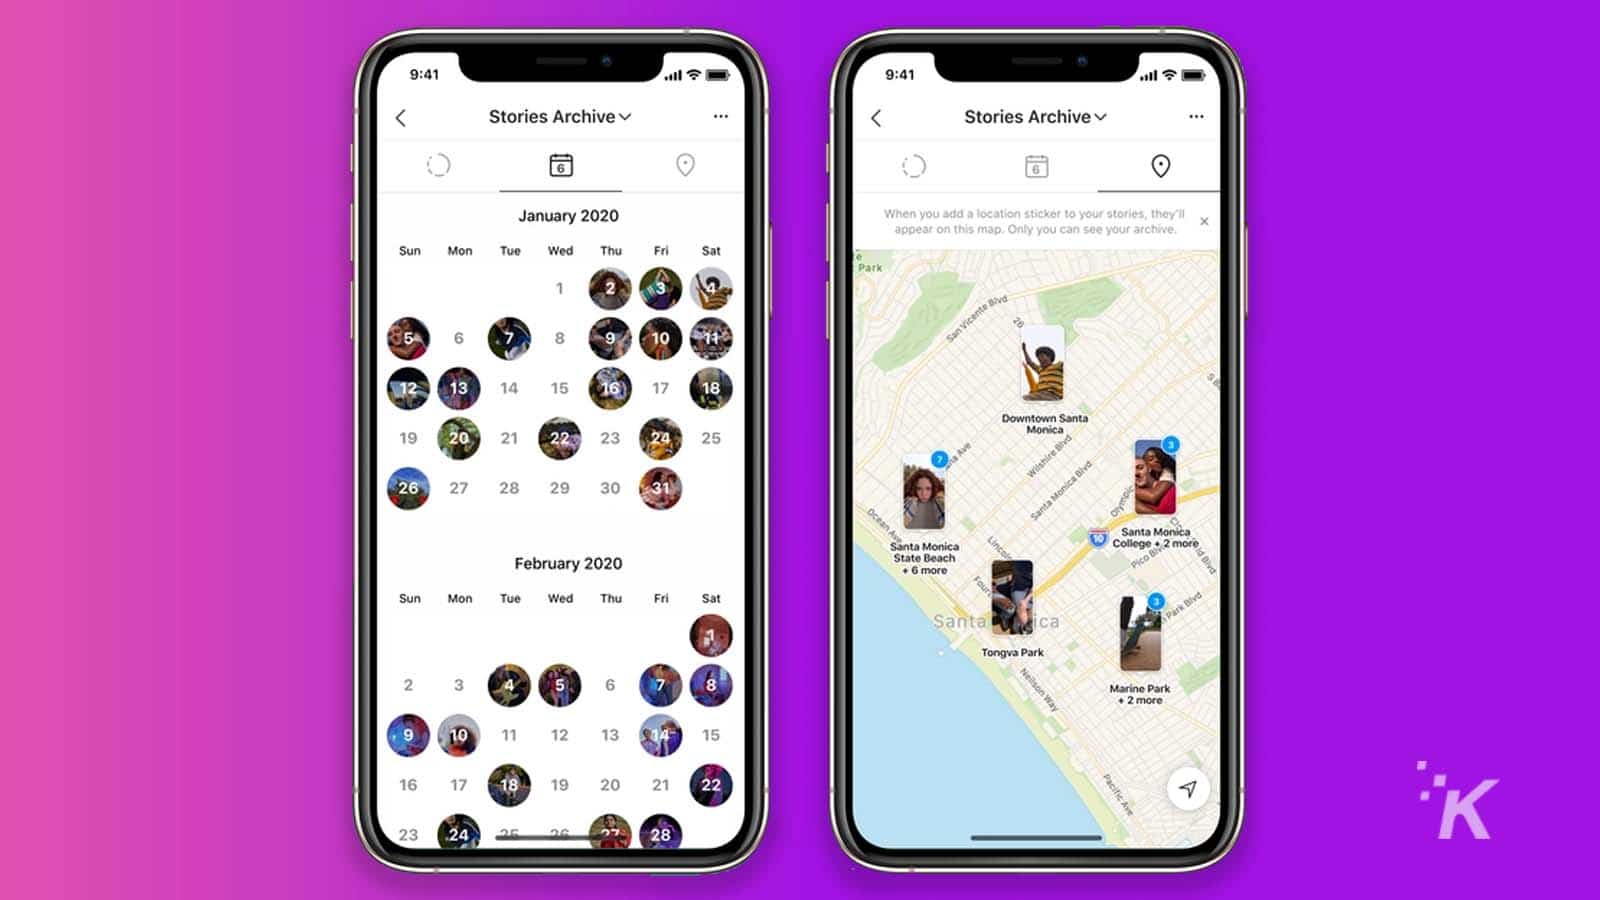 instagram stories map for 10th birthday